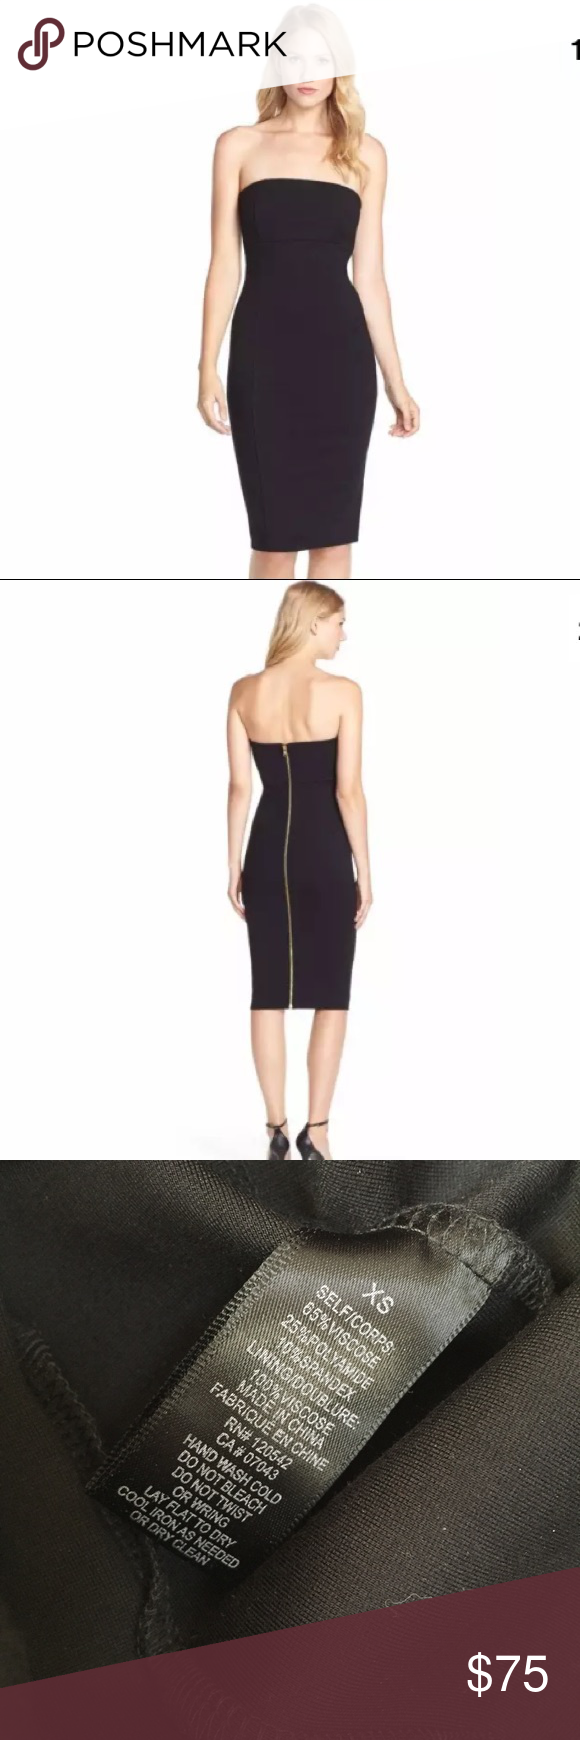 Nordstrom Felicity & Coco Strapless Cocktail Dress   Strapless ...